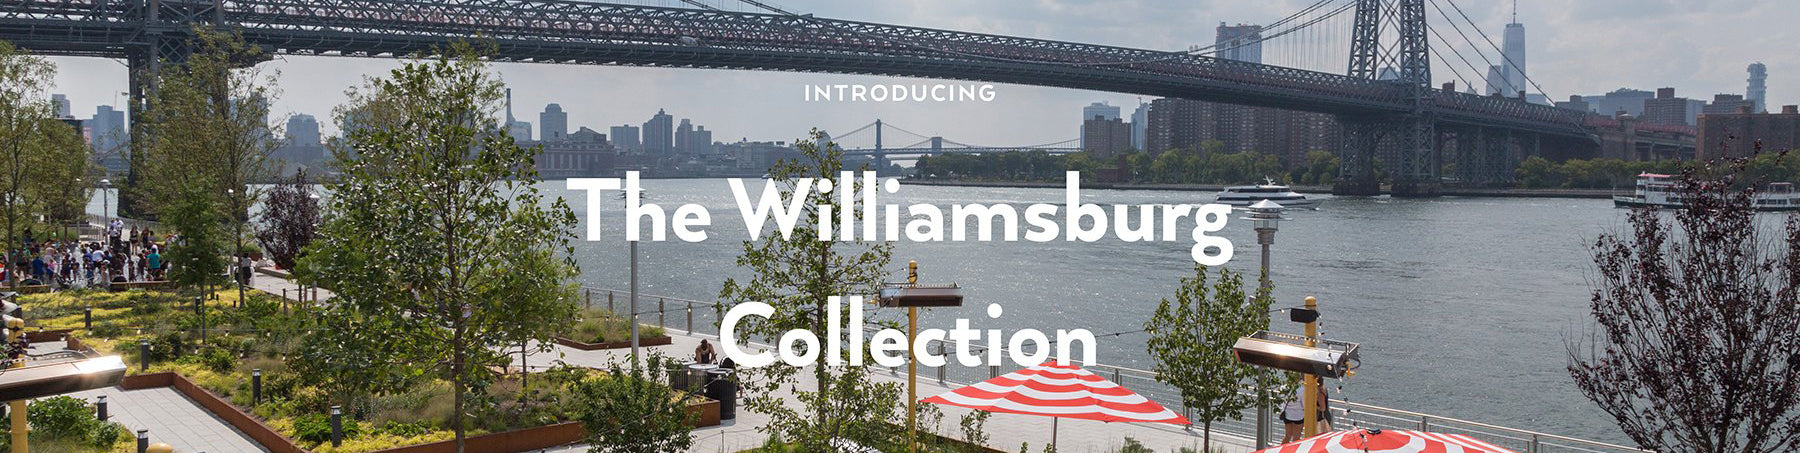 The Williamsburg Collection